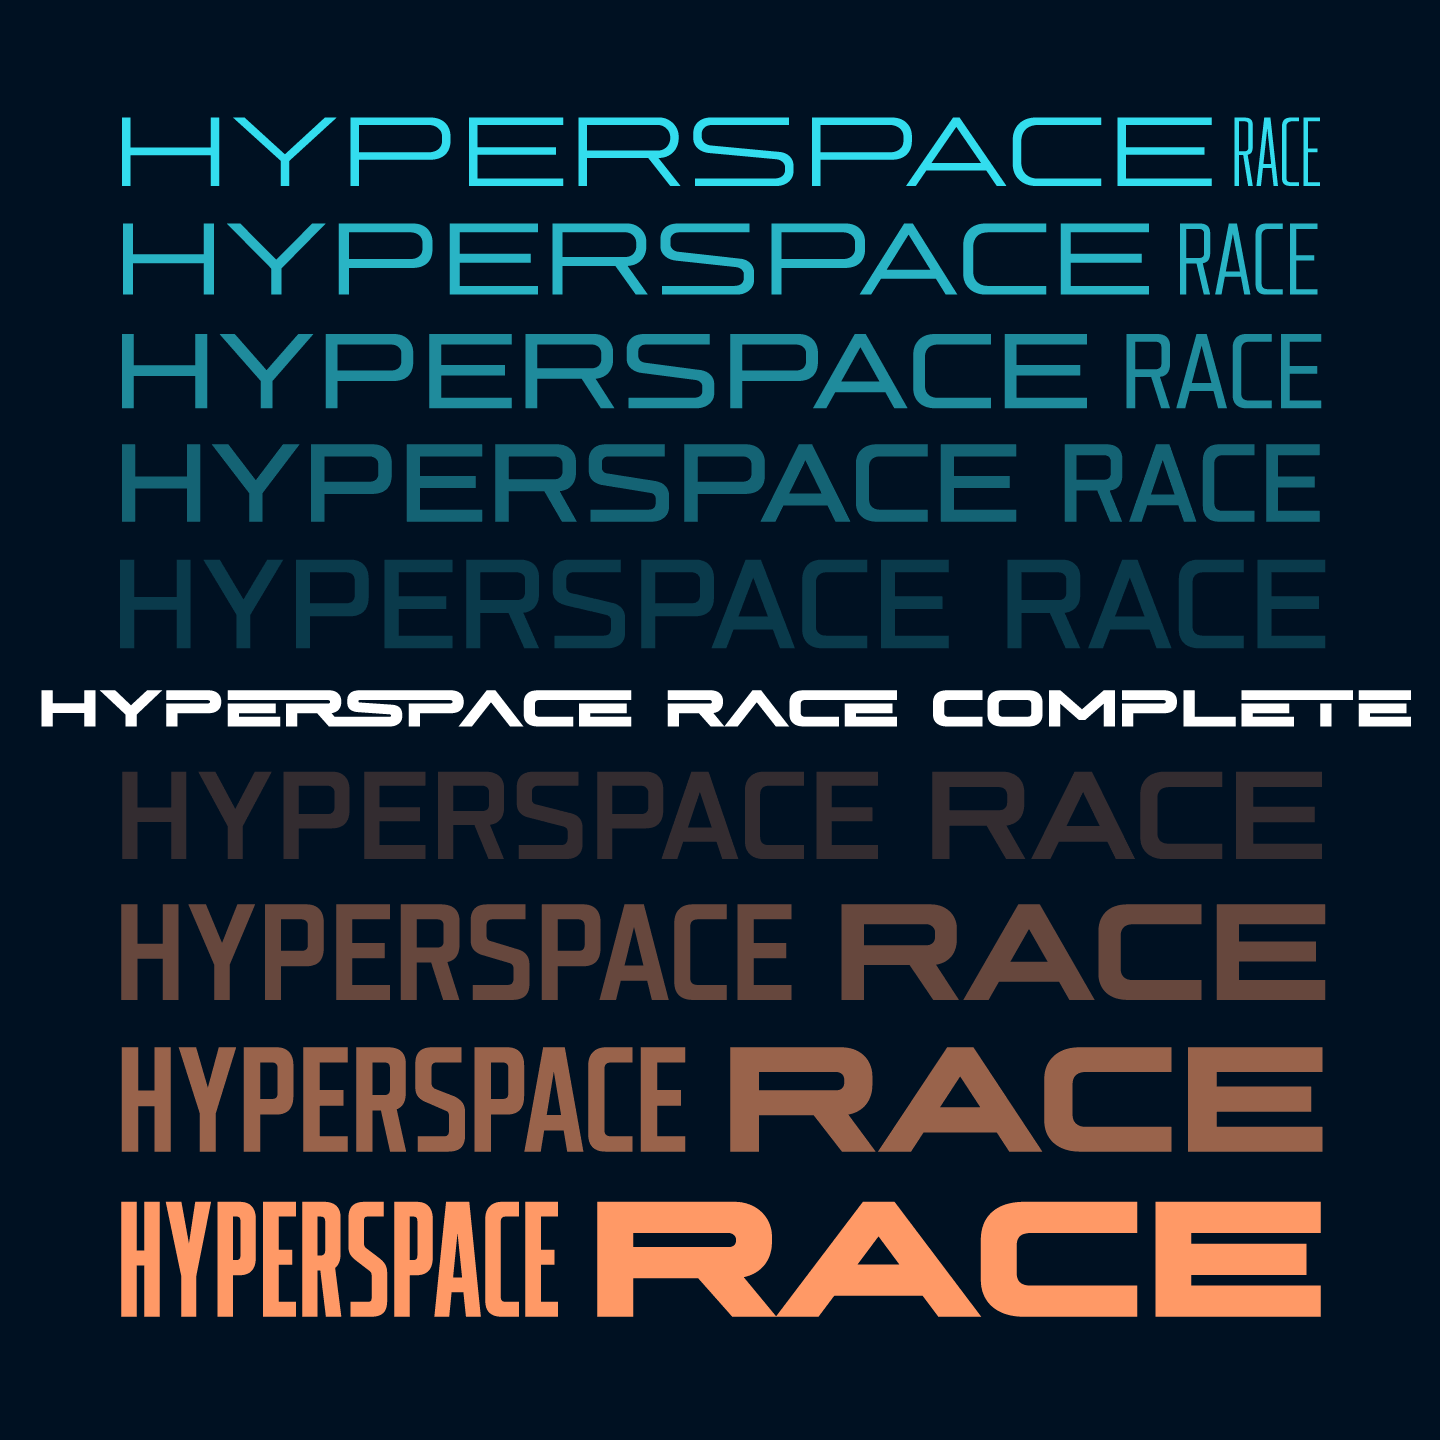 Hyperspace Race Complete